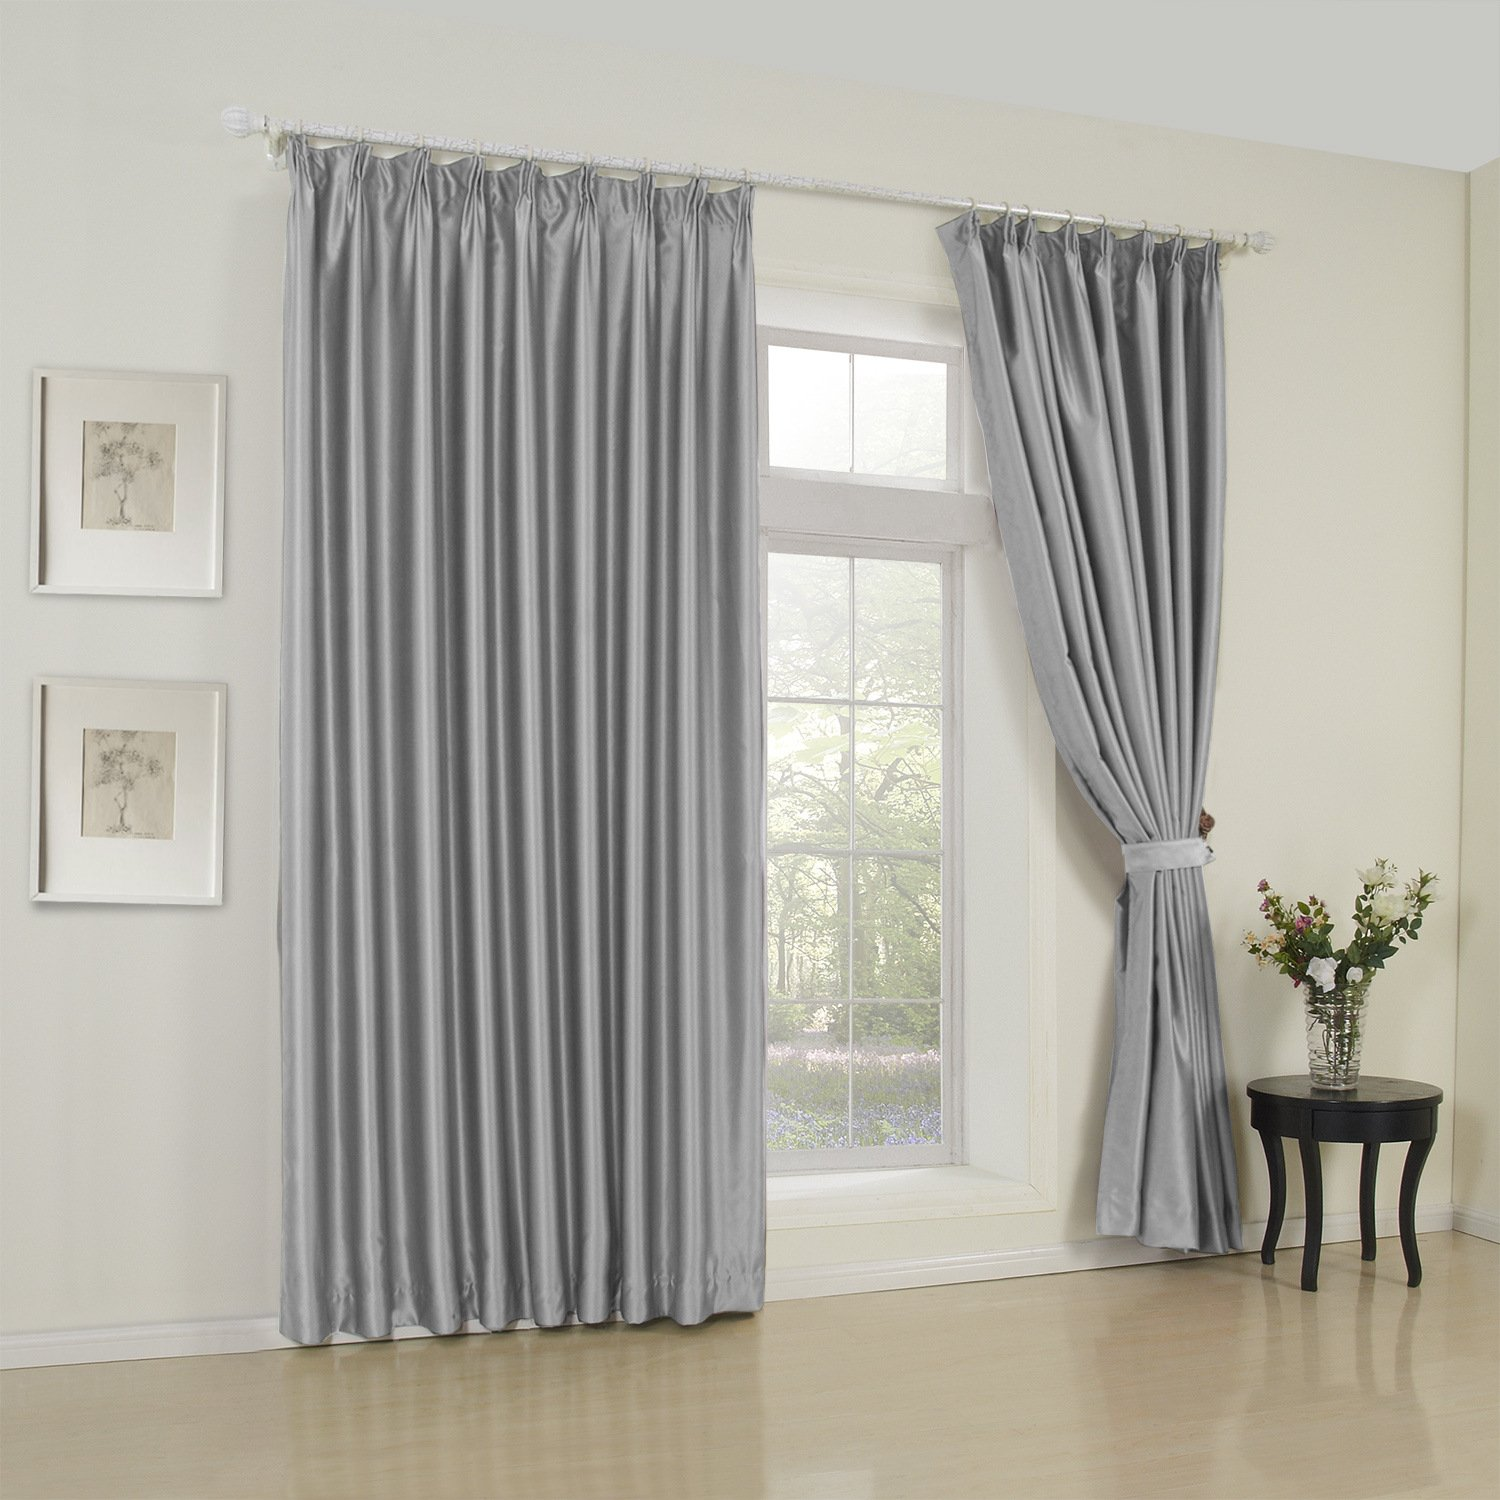 50''W x 96''L (Set of 2 panels) Multi Size Available Custom Modern Solid Grey Double Pleated Lined Blackout Window Treatment Draperies & Curtains Panels